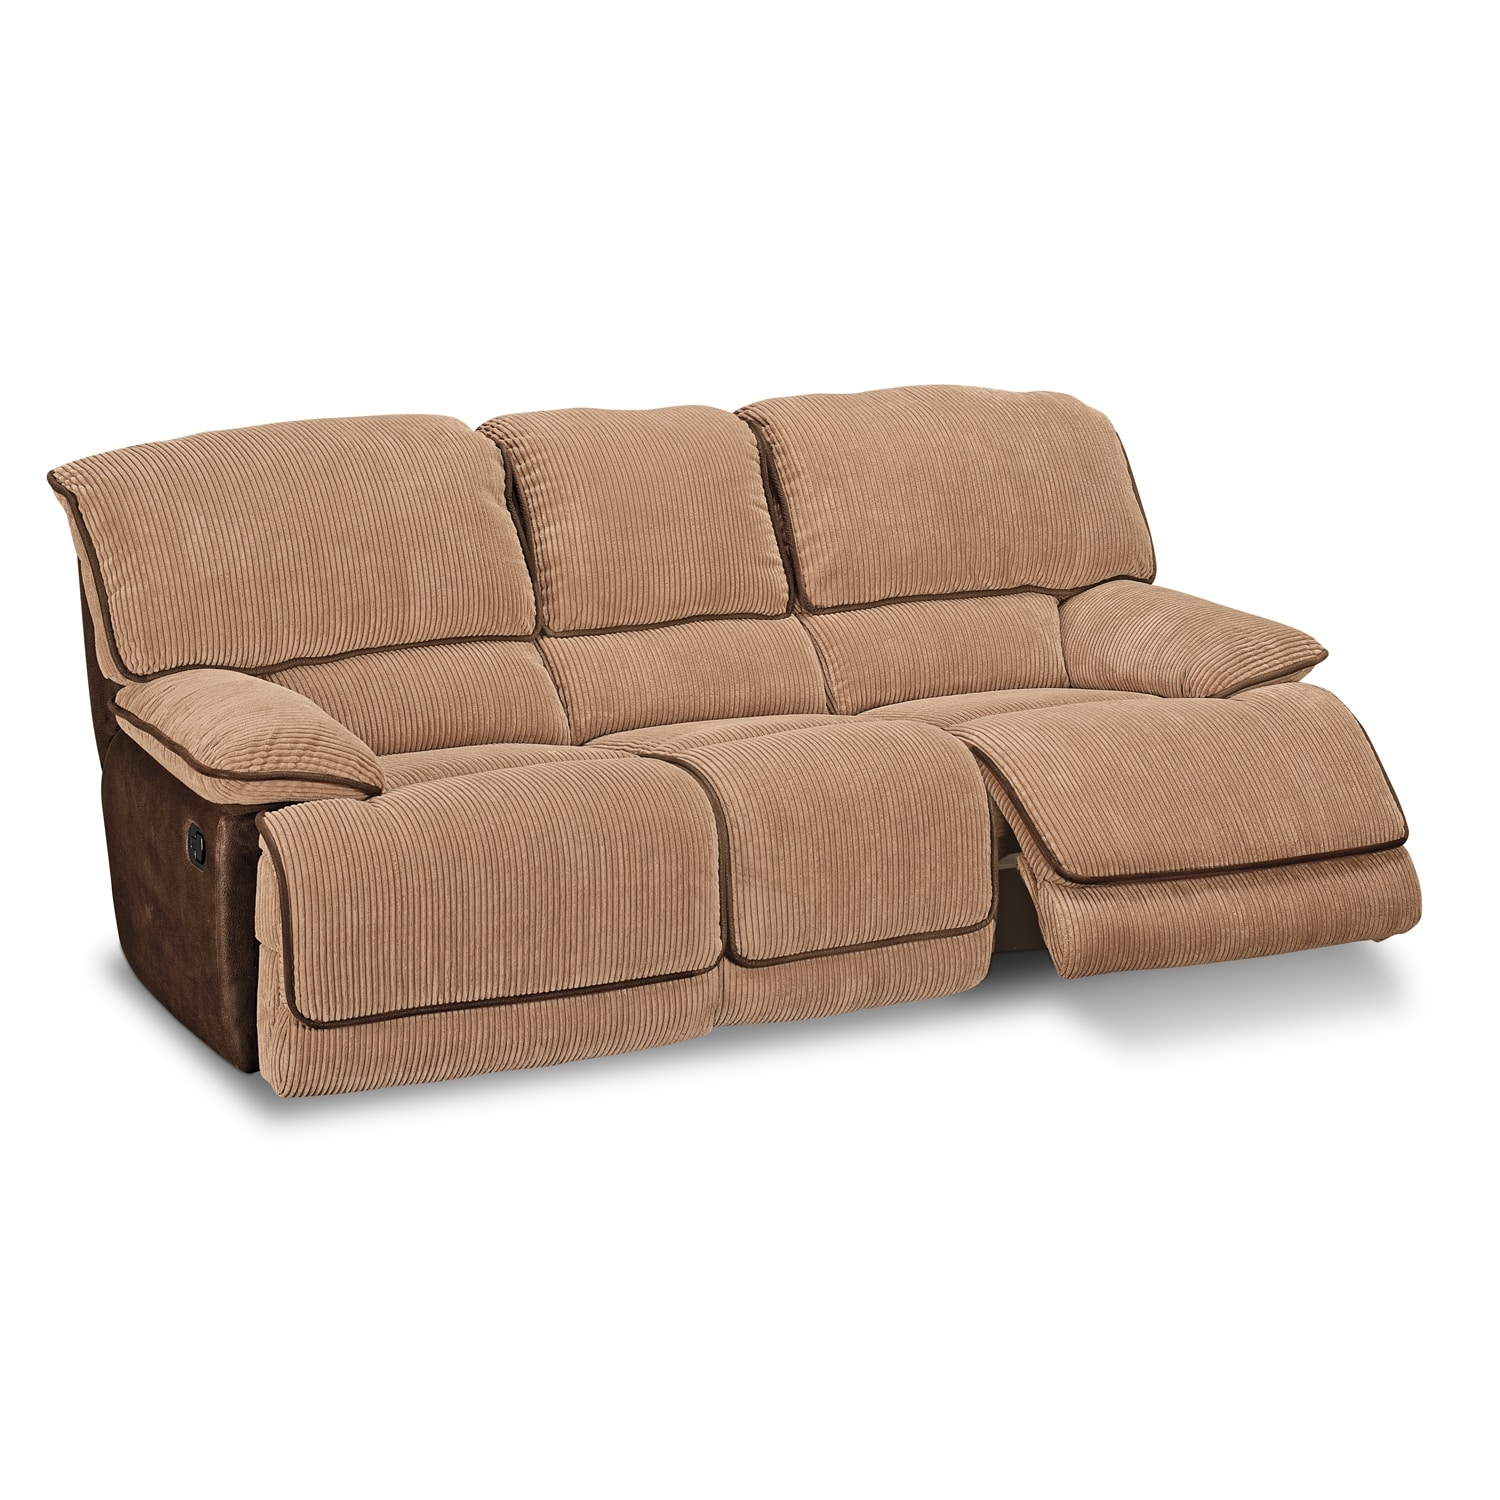 Laguna Dual Reclining Sofa : Value City Furniture